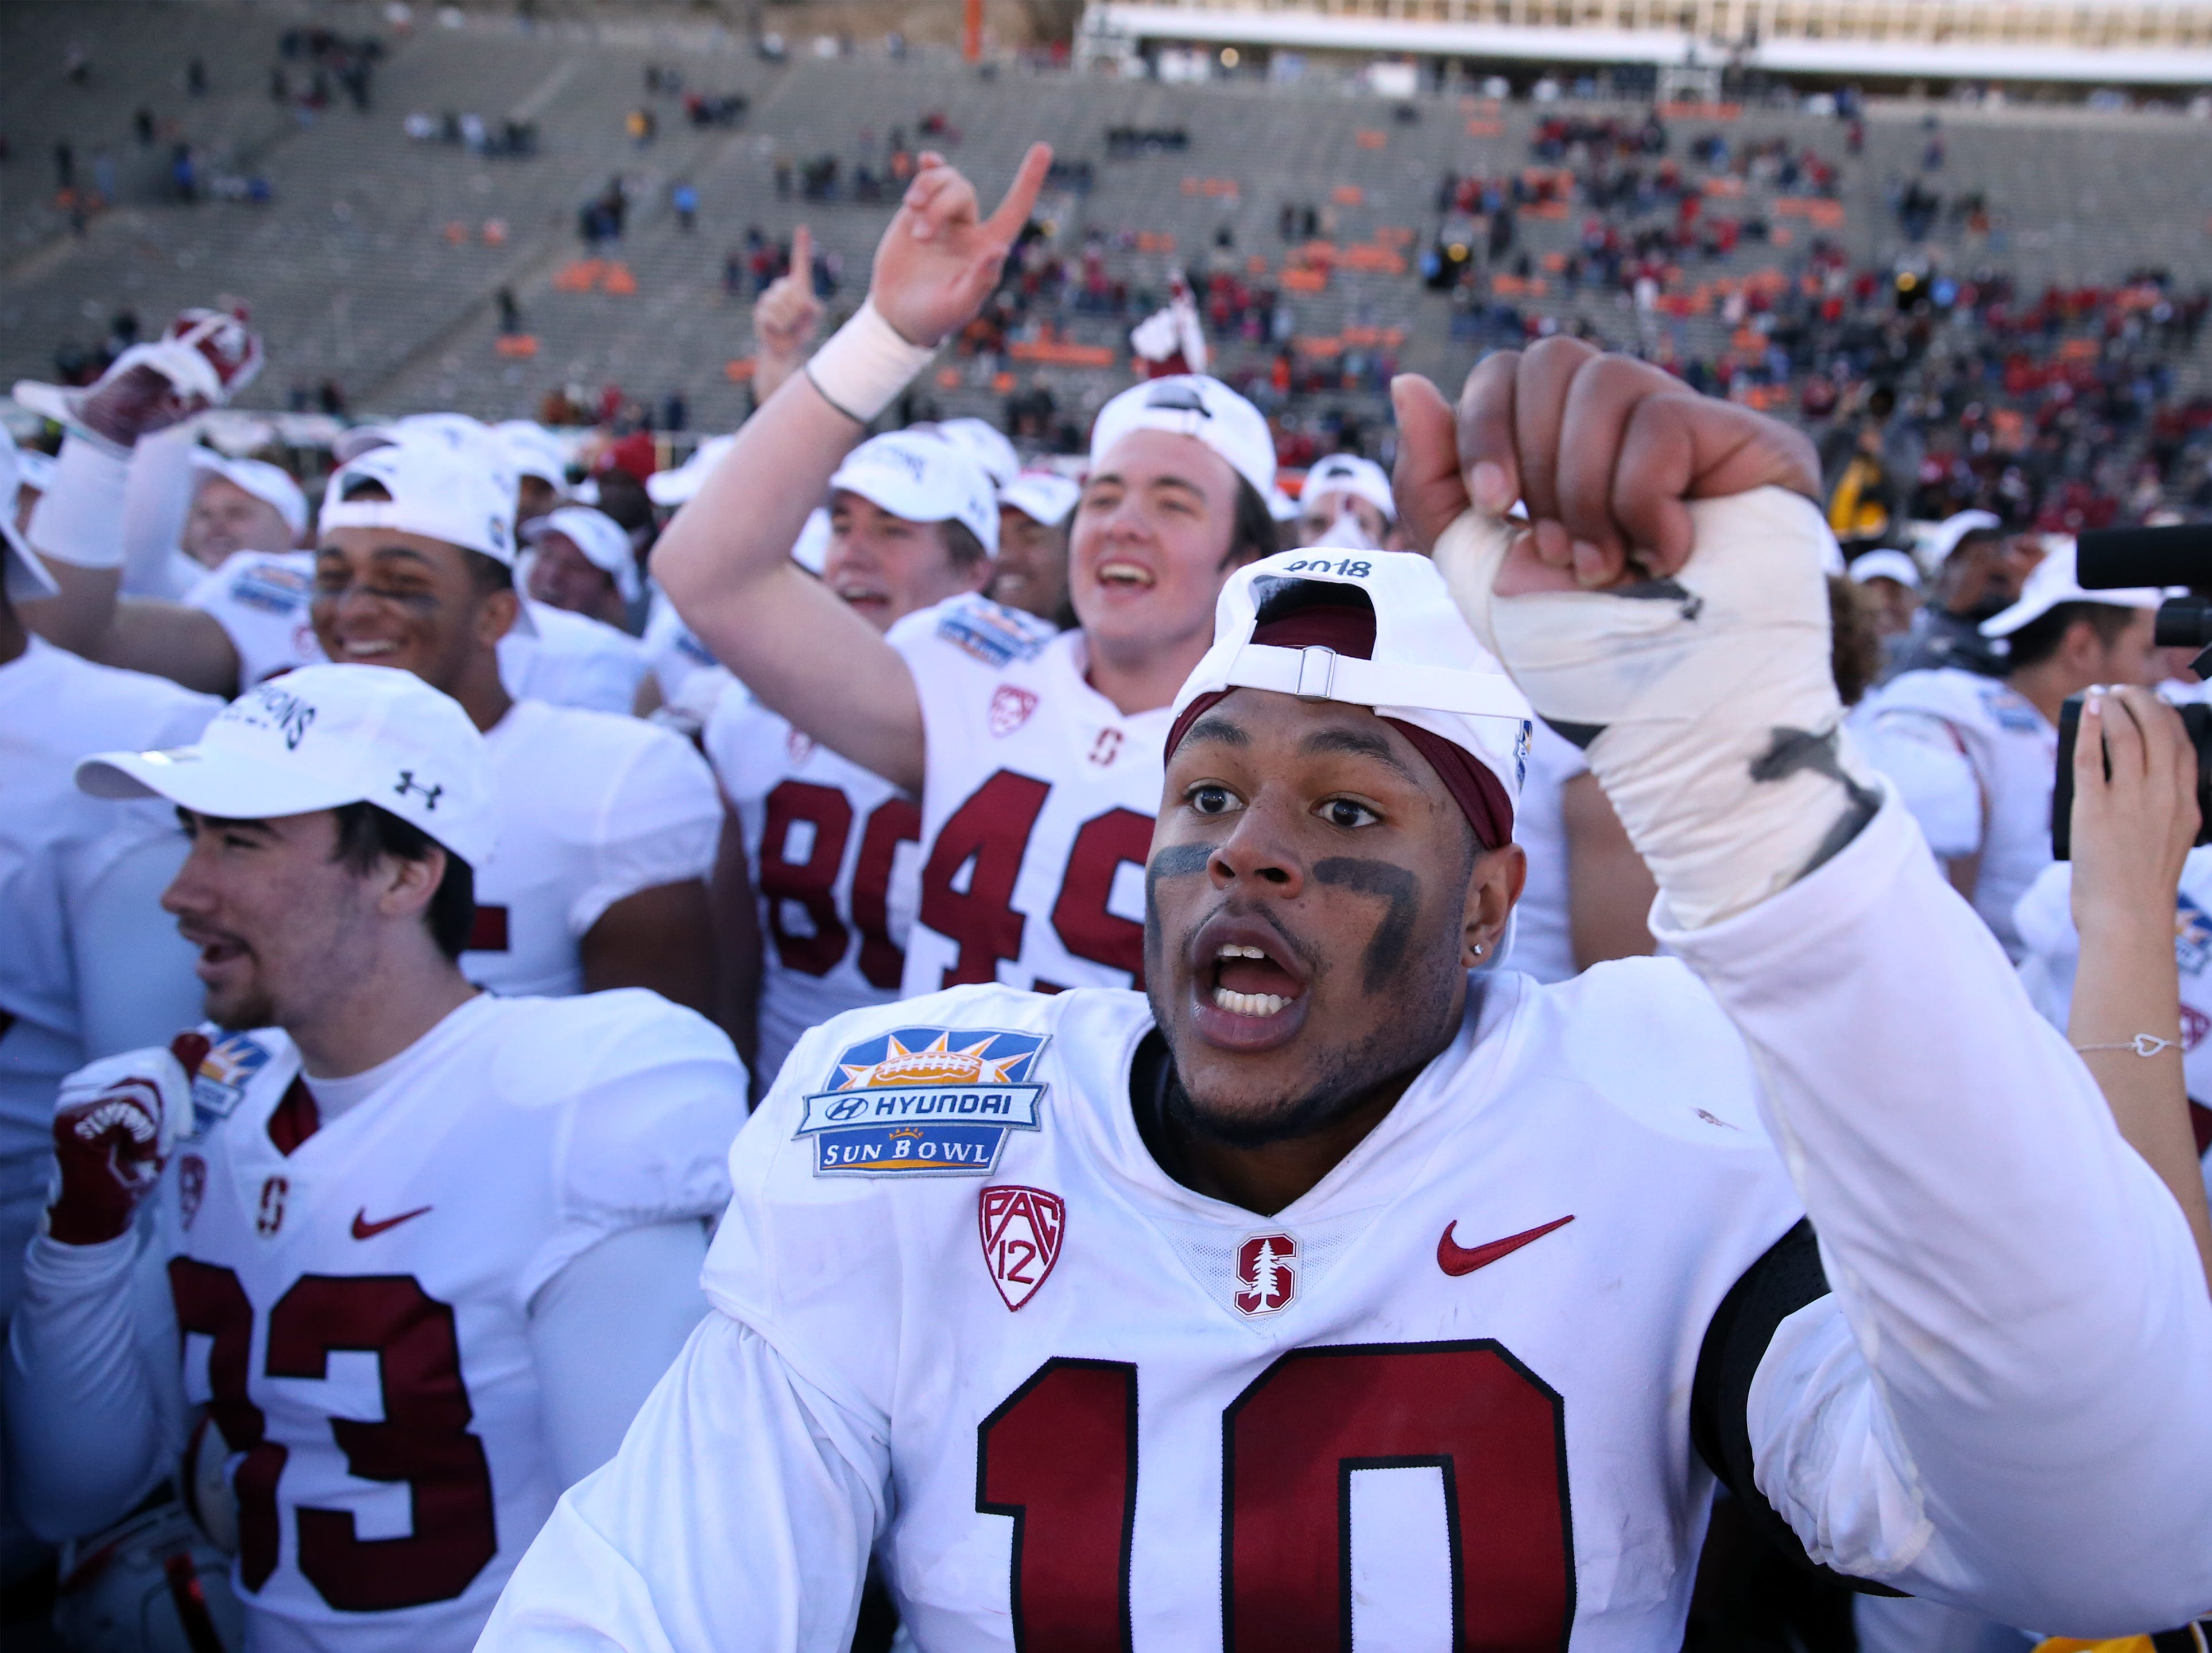 The Stanford Cardinal football team, including outside linebacker Jordan Fox, 10, celebrate their 14-13 win over the University of Pittsburgh Panthers in the 85th Hyundai Sun Bowl game Monday.